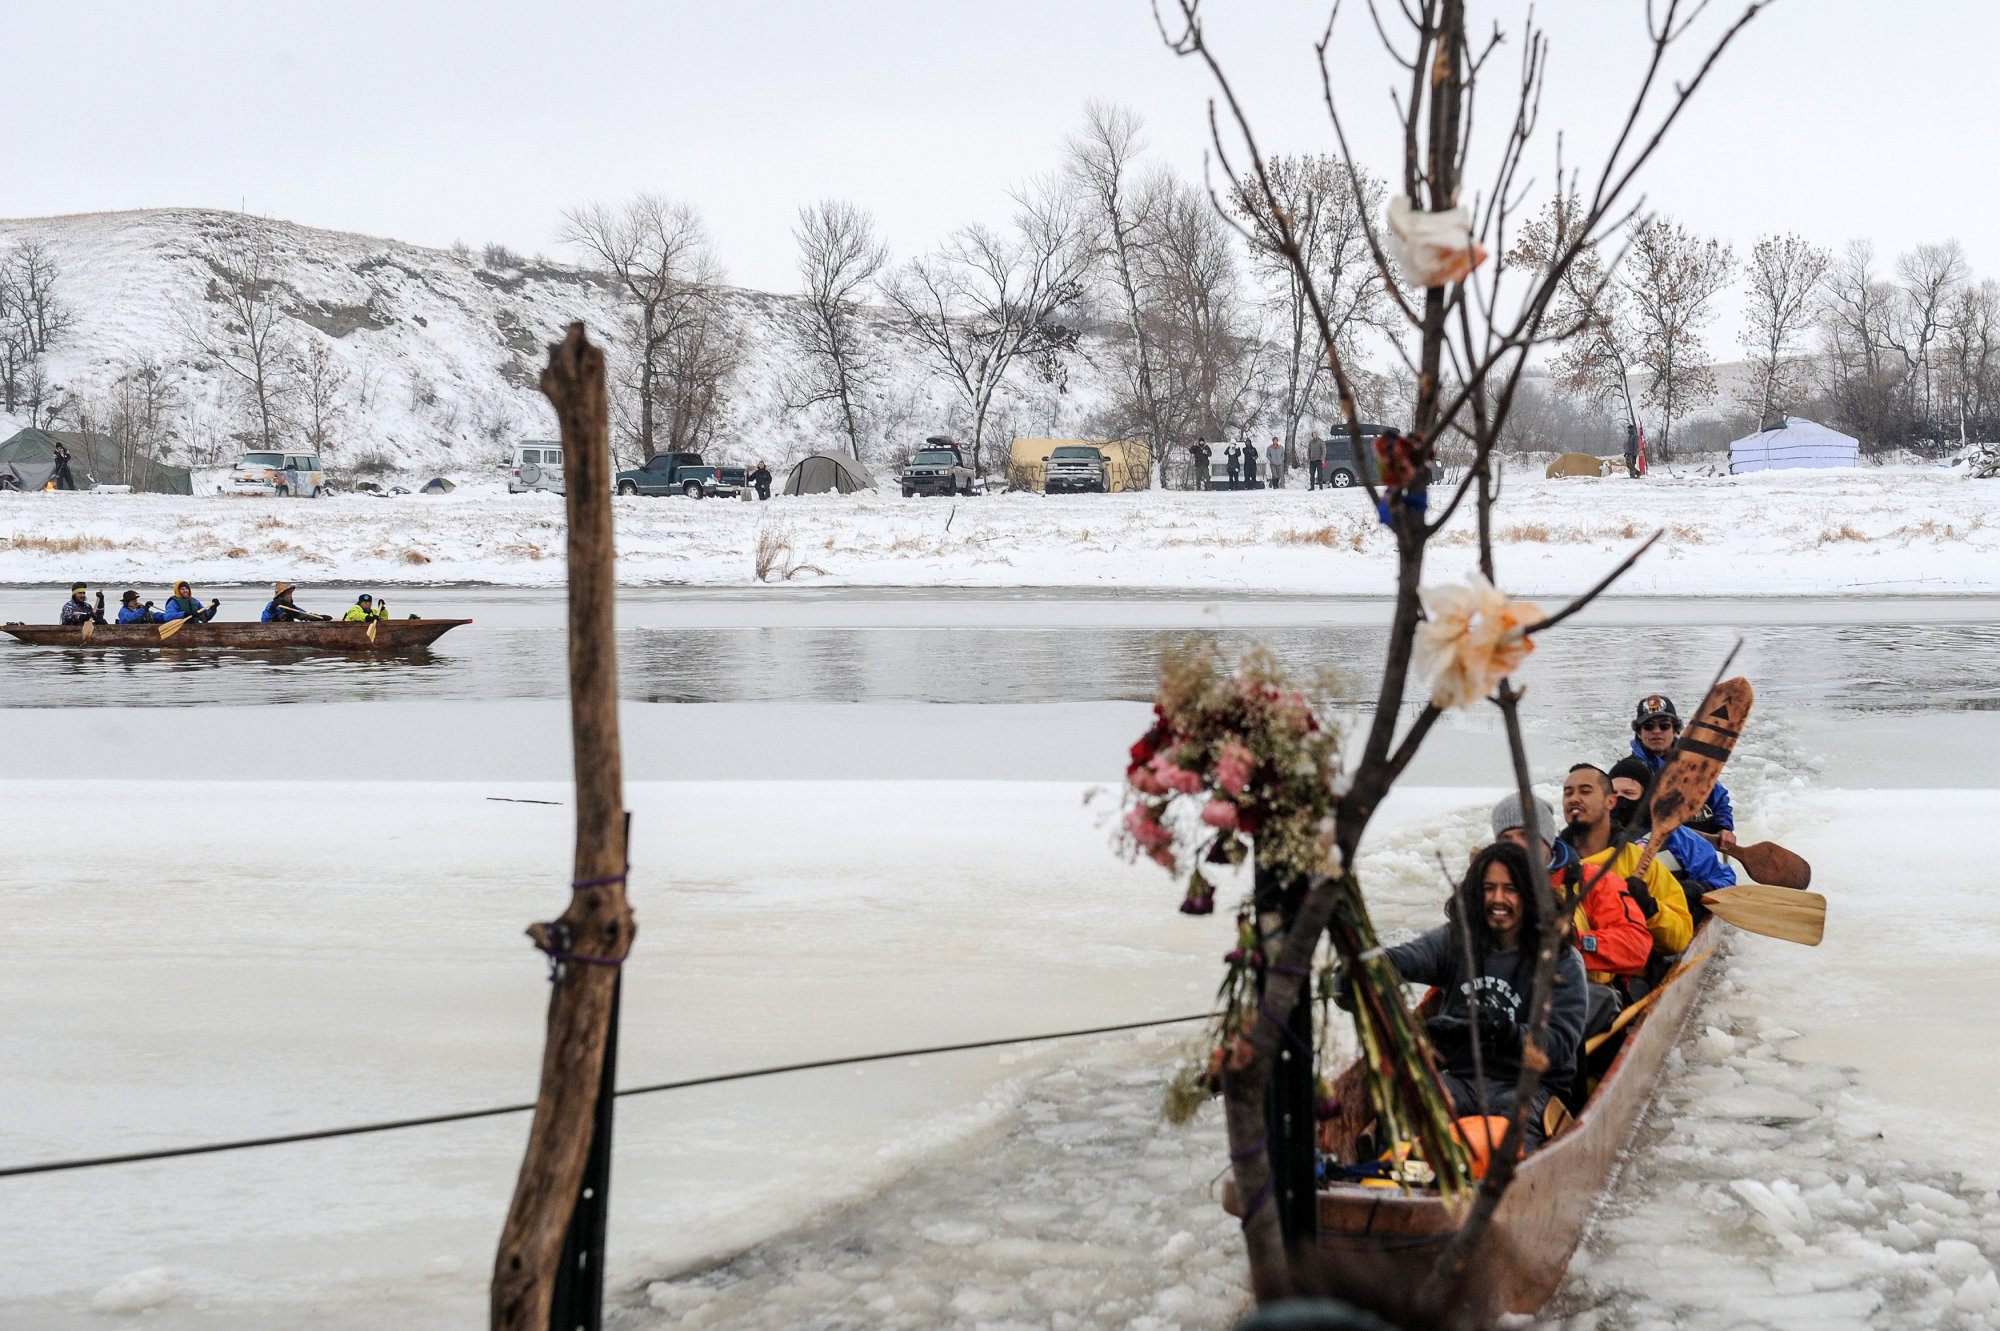 Traditional canoes approach the shore in the Oceti Sakowin camp during a protest over plans to pass the Dakota Access pipeline near the Standing Rock Indian Reservation, near Cannon Ball, North Dakota, Thursday. | REUTERS